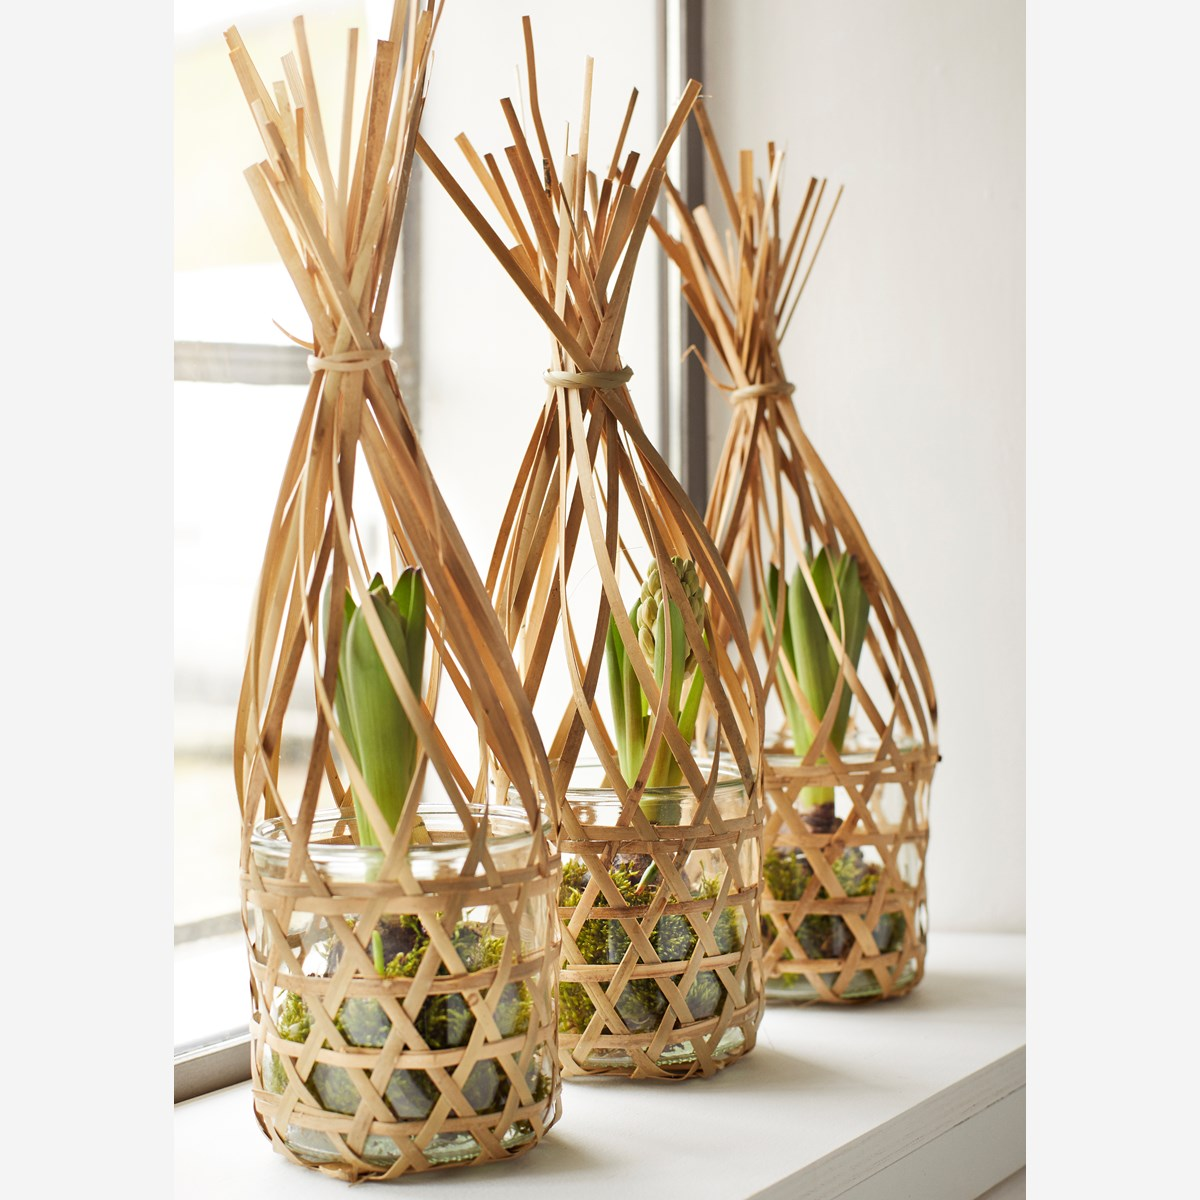 Bamboo basket w/ glass